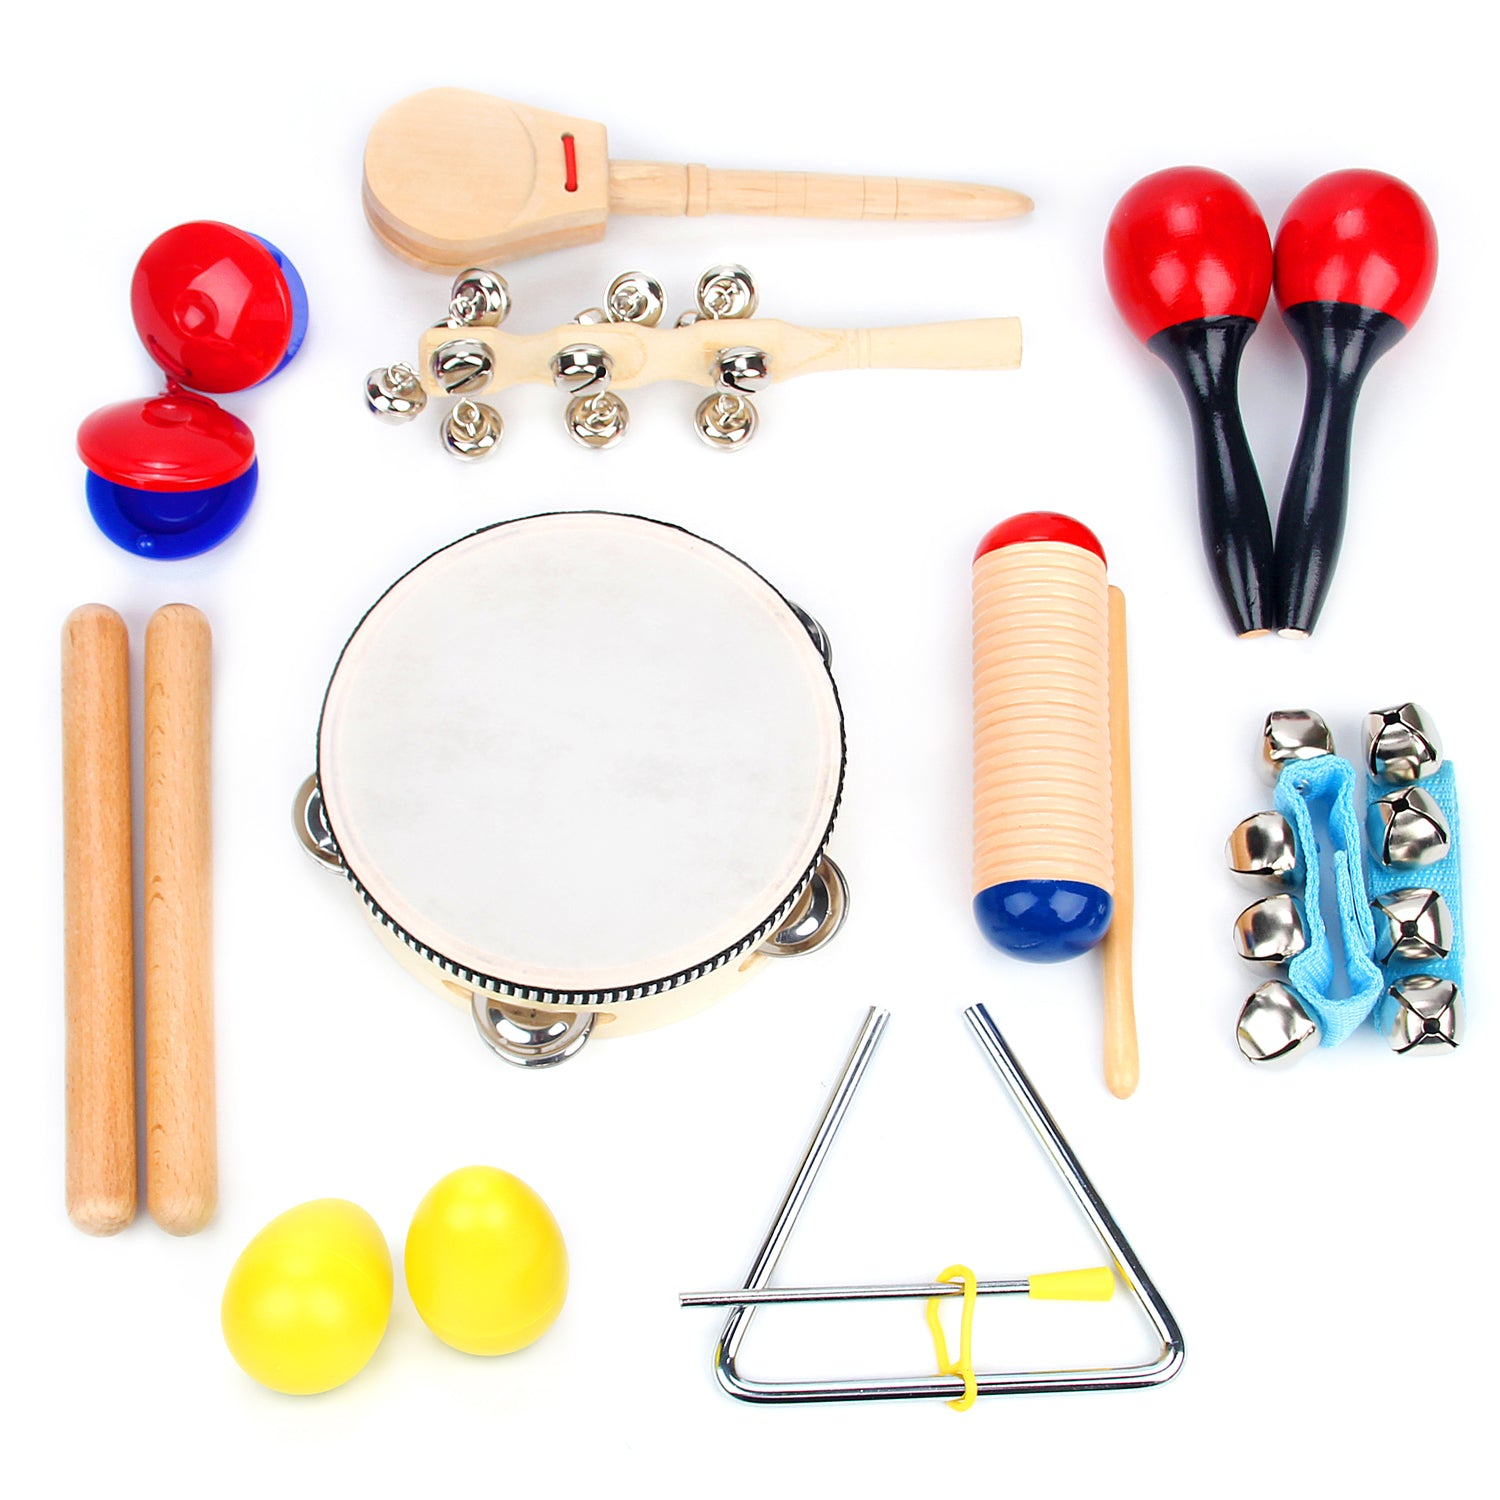 16 PC Musical Instrument Set Educational Toys